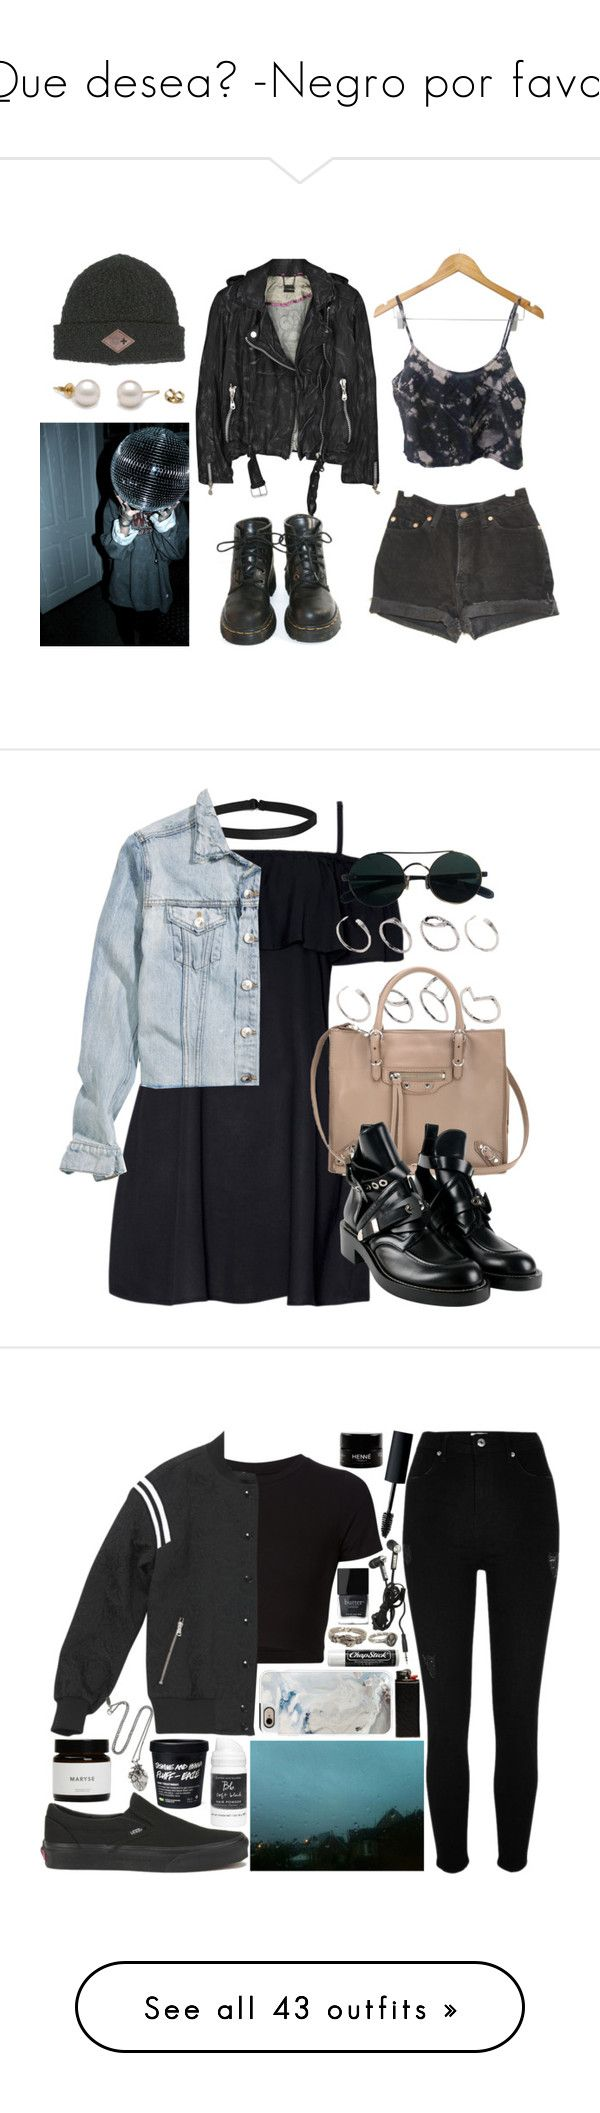 """Que desea? -Negro por favor"" by abigail-15-love ❤ liked on Polyvore featuring Levi's, Billabong, Doma, Dr. Martens, Boohoo, H&M, ASOS, Balenciaga, Getting Back To Square One and Sandro"